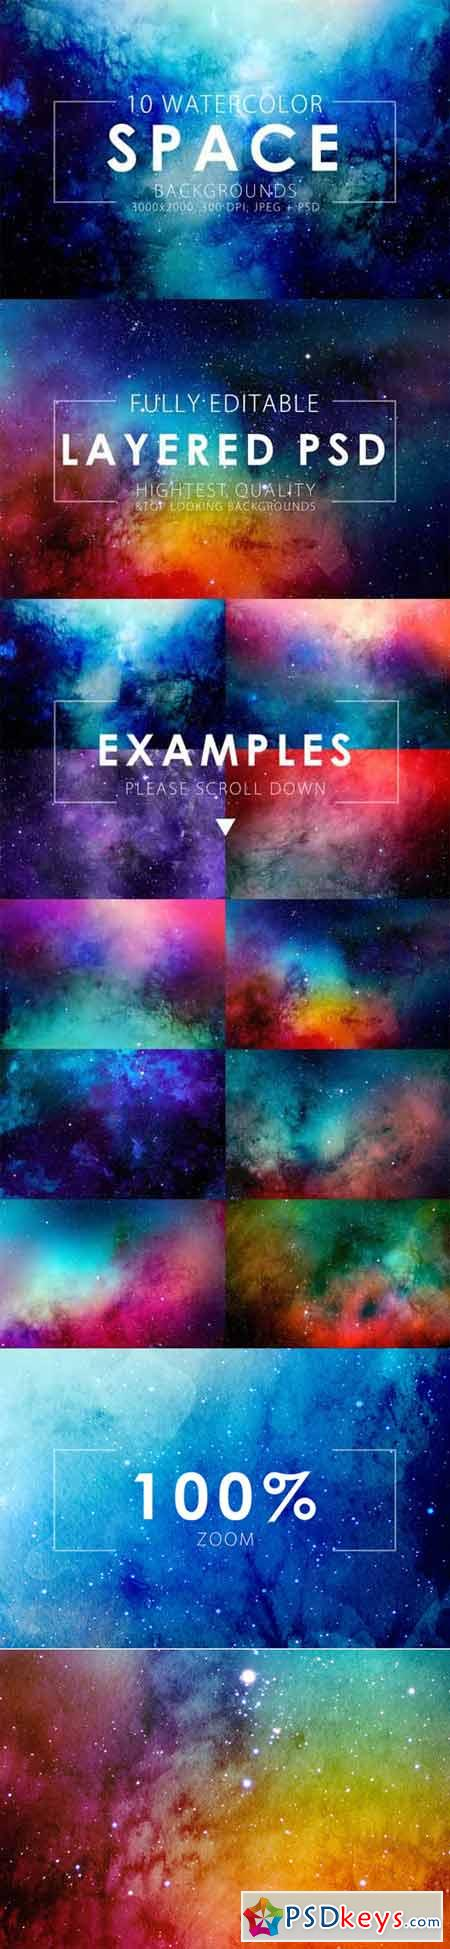 Space Watercolor Backgrounds 325464